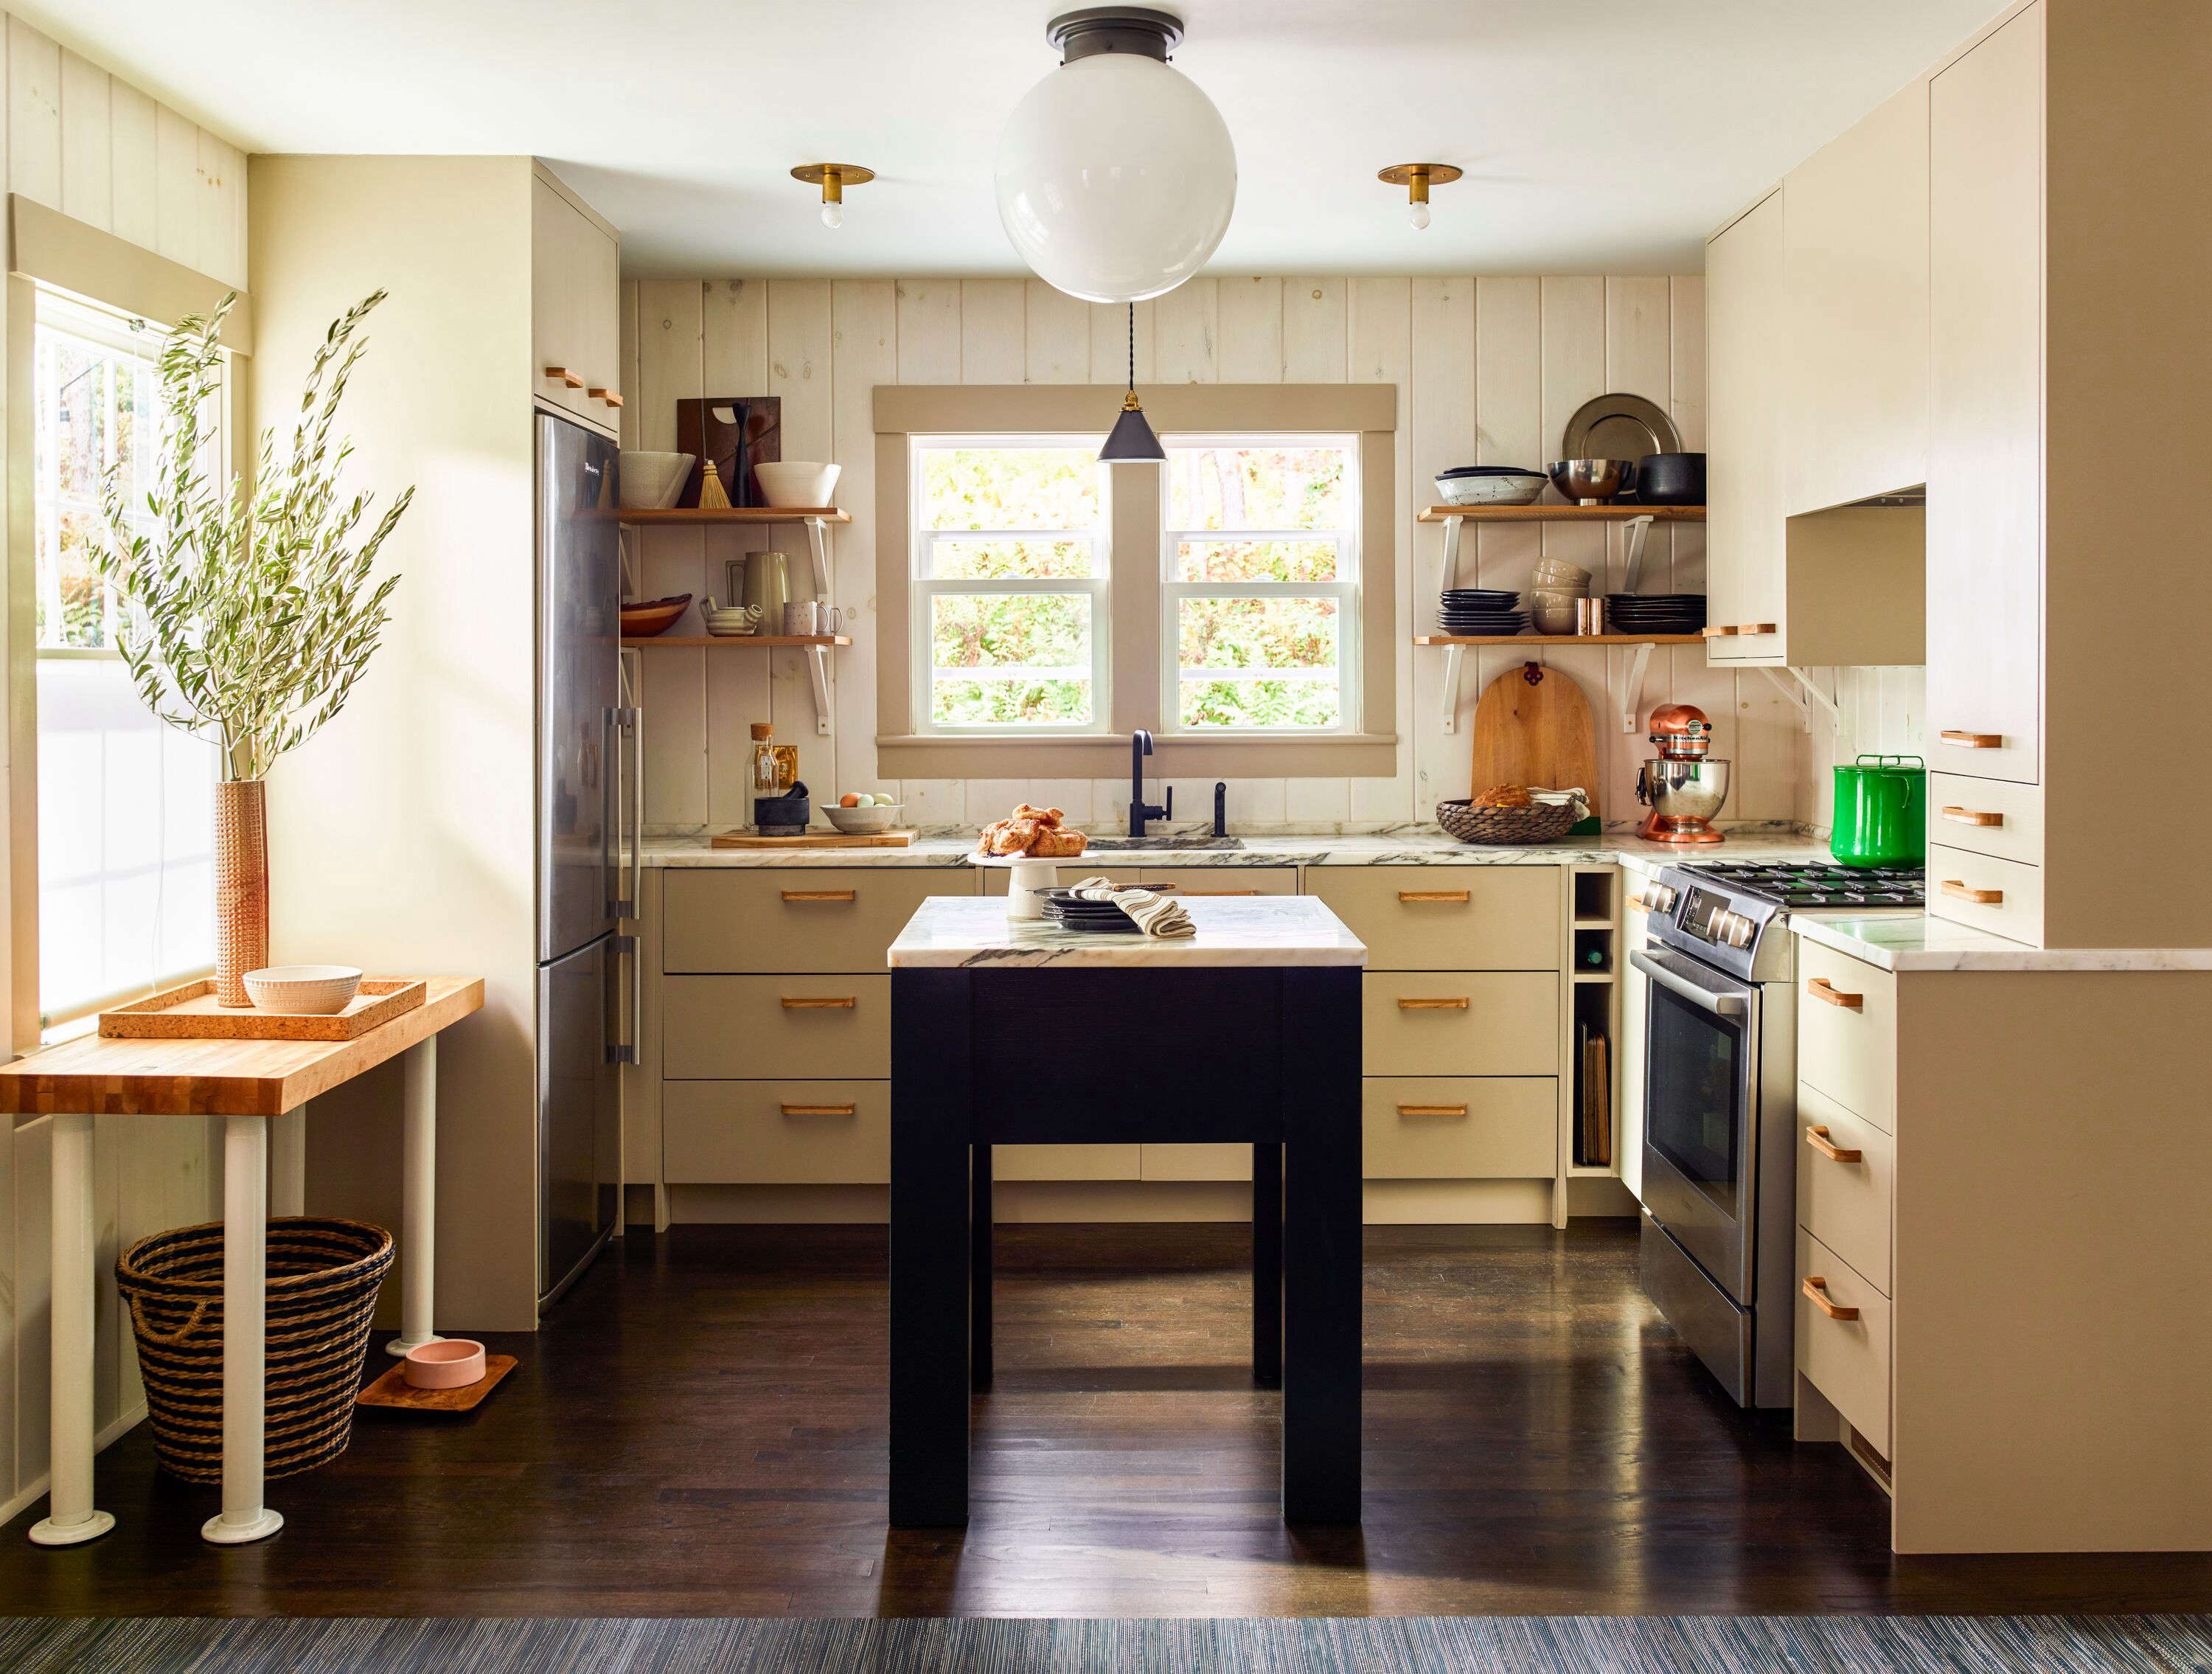 Ikea kitchen upgrade: a cost-conscious modern country kitchen with